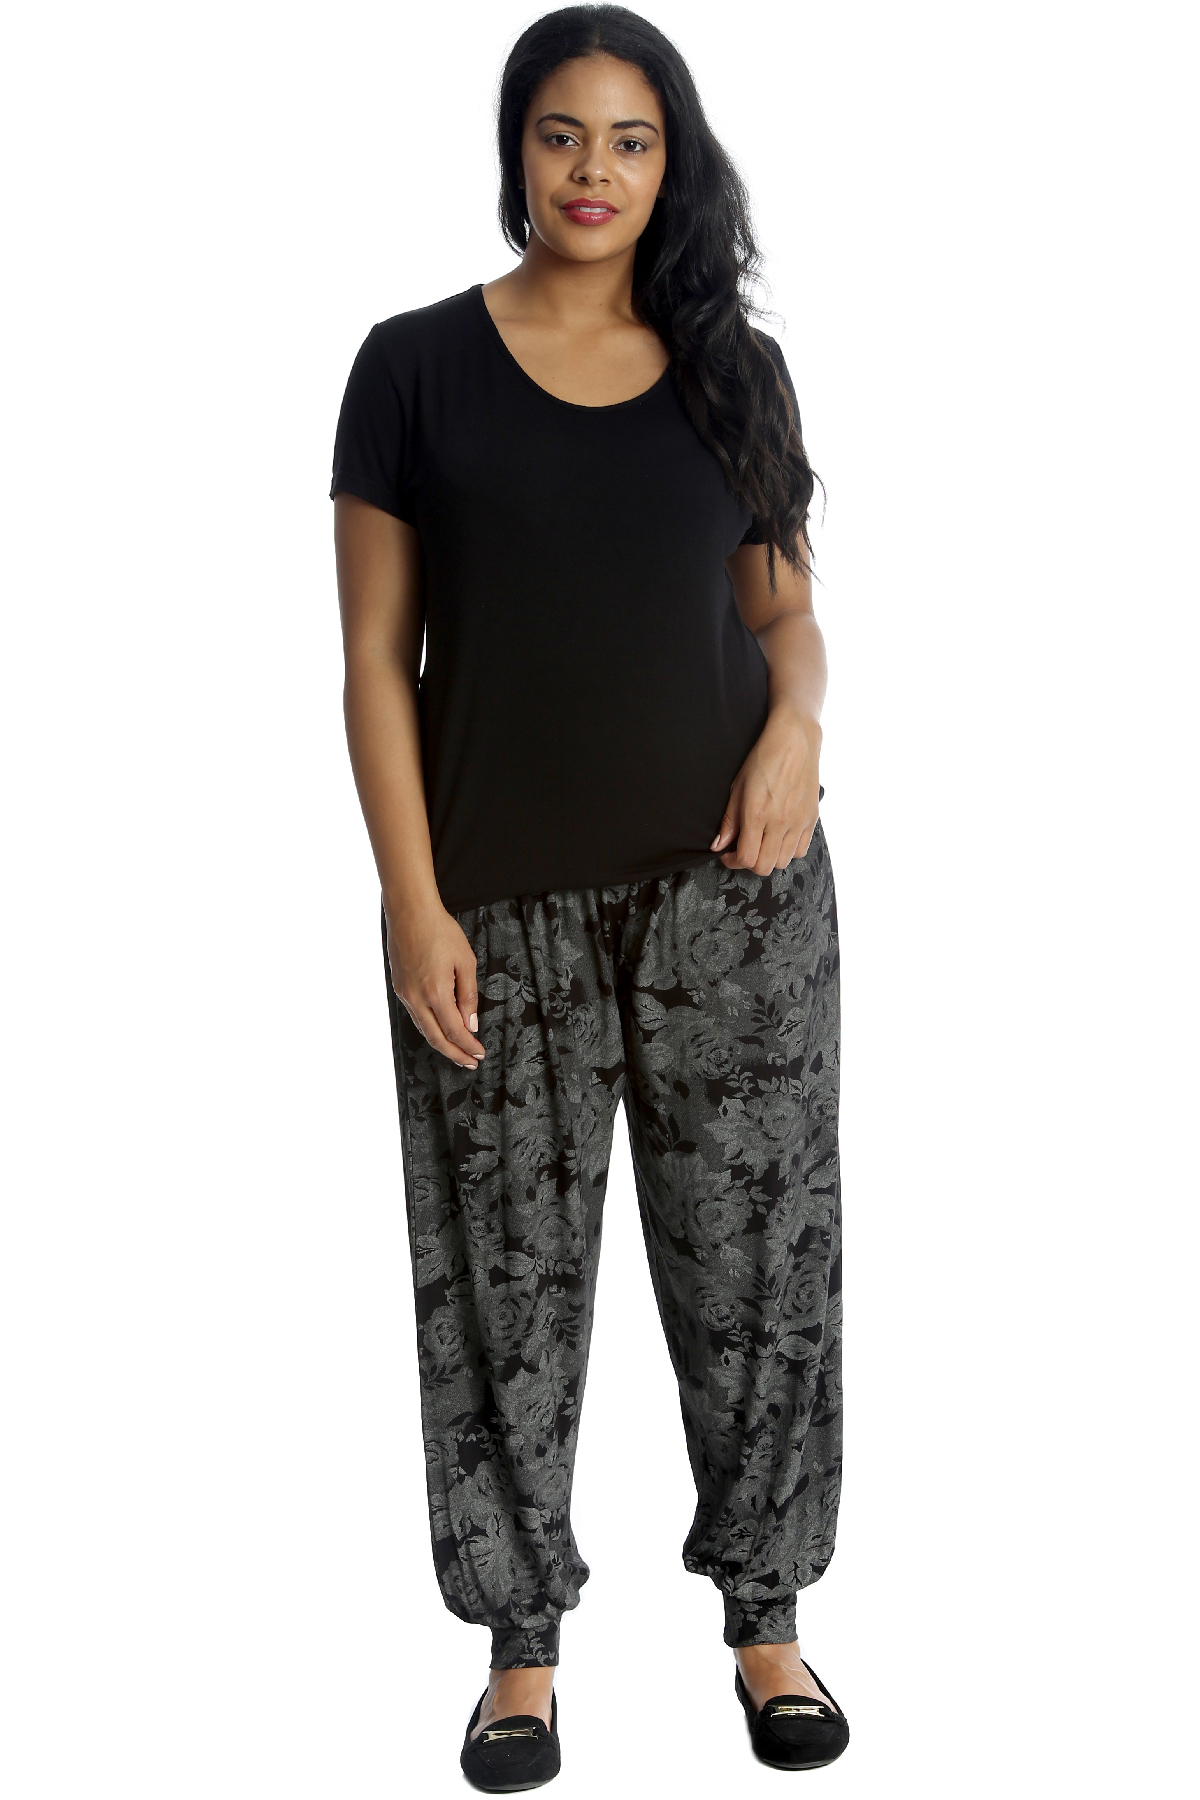 New-Womens-Plus-Size-Trousers-Ladies-Harem-Pants-Ali-Baba-Floral-Print-Tie-Dye